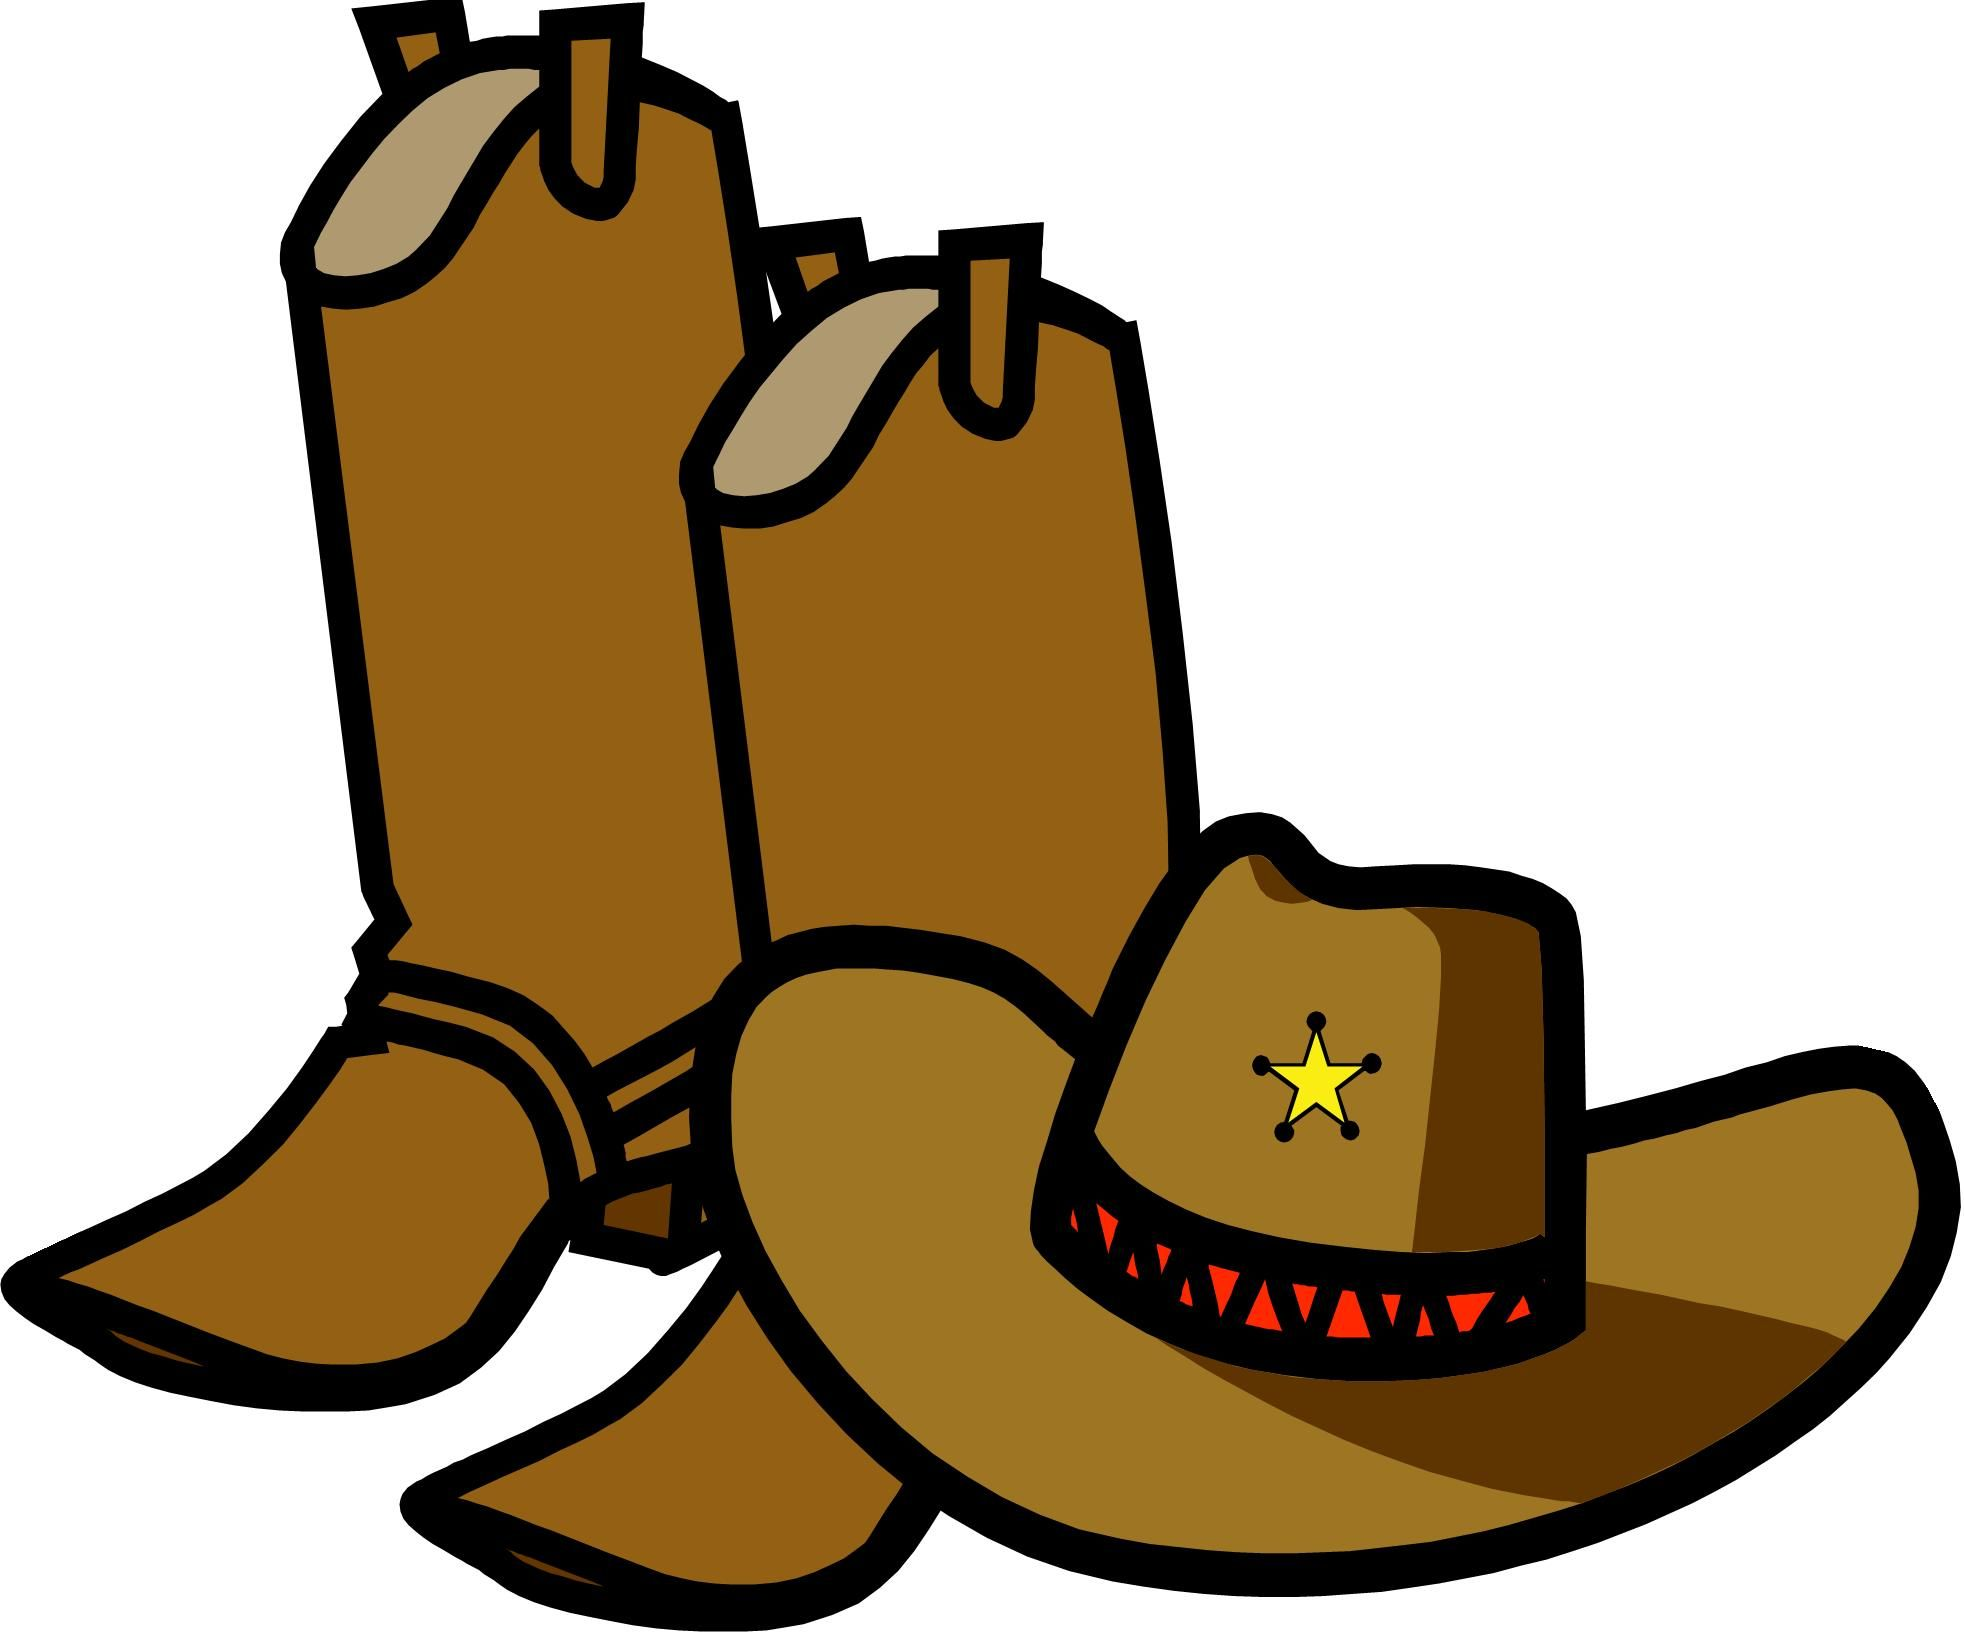 Image free cartoon western. Cowboy clipart cowboy outfit